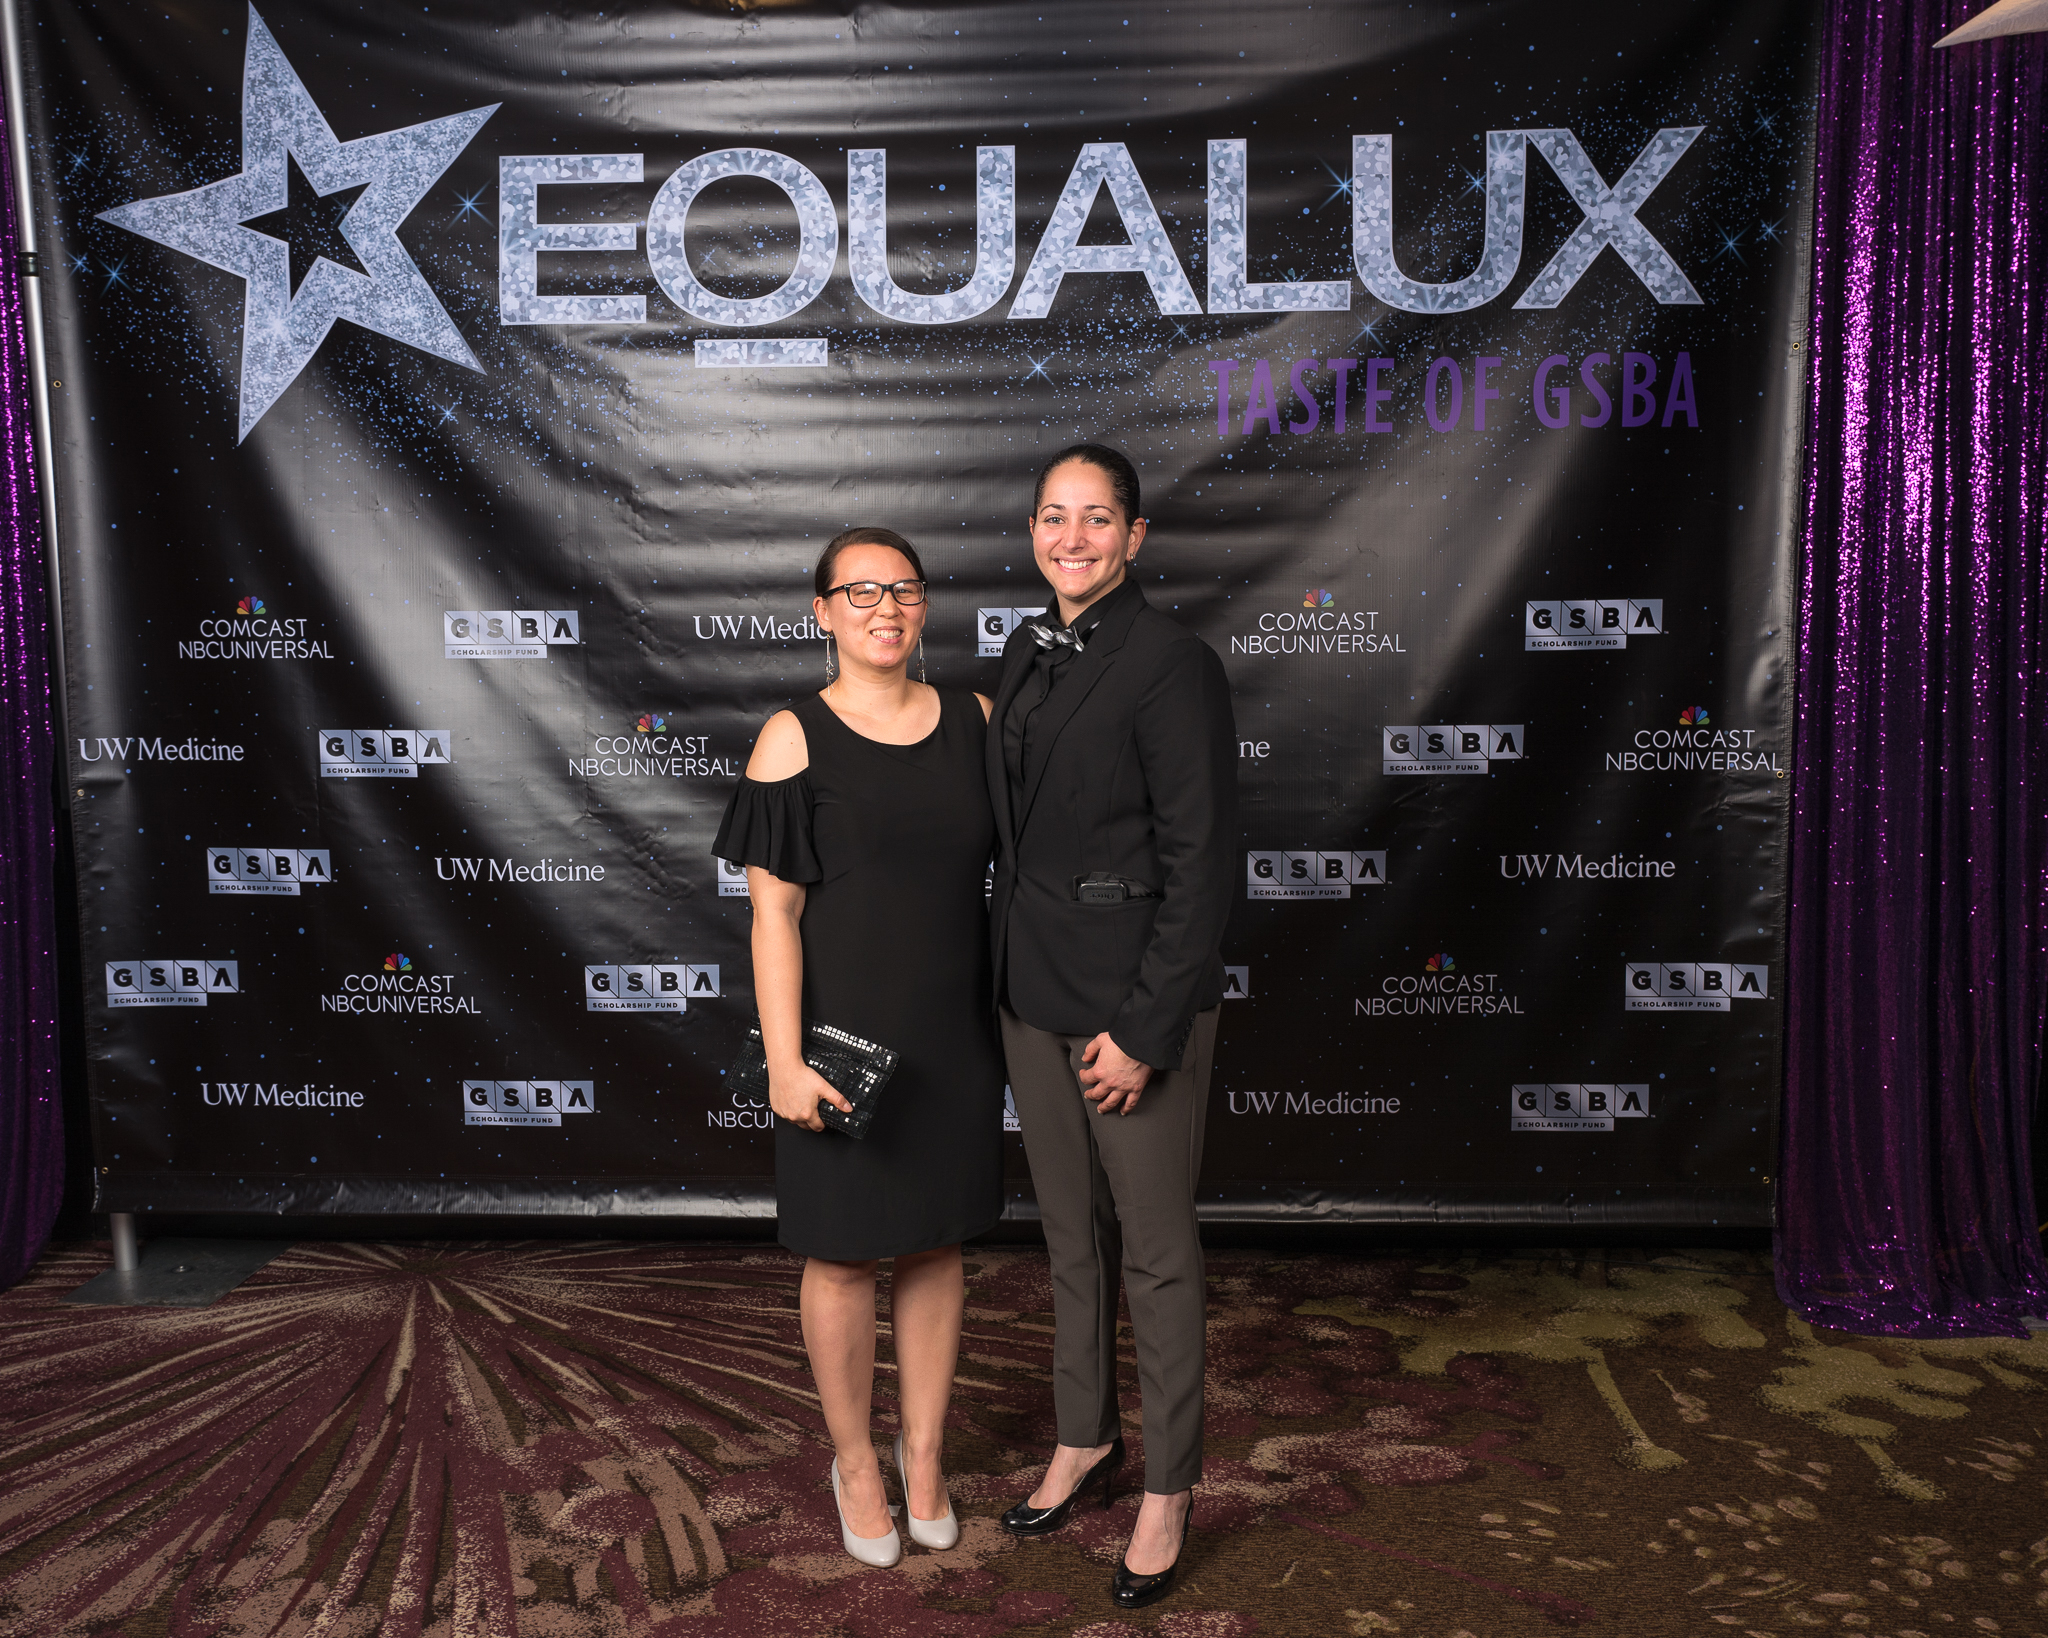 111718_GSBA EQUALUX at The Westin Seattle (Credit- Nate Gowdy)-168.jpg